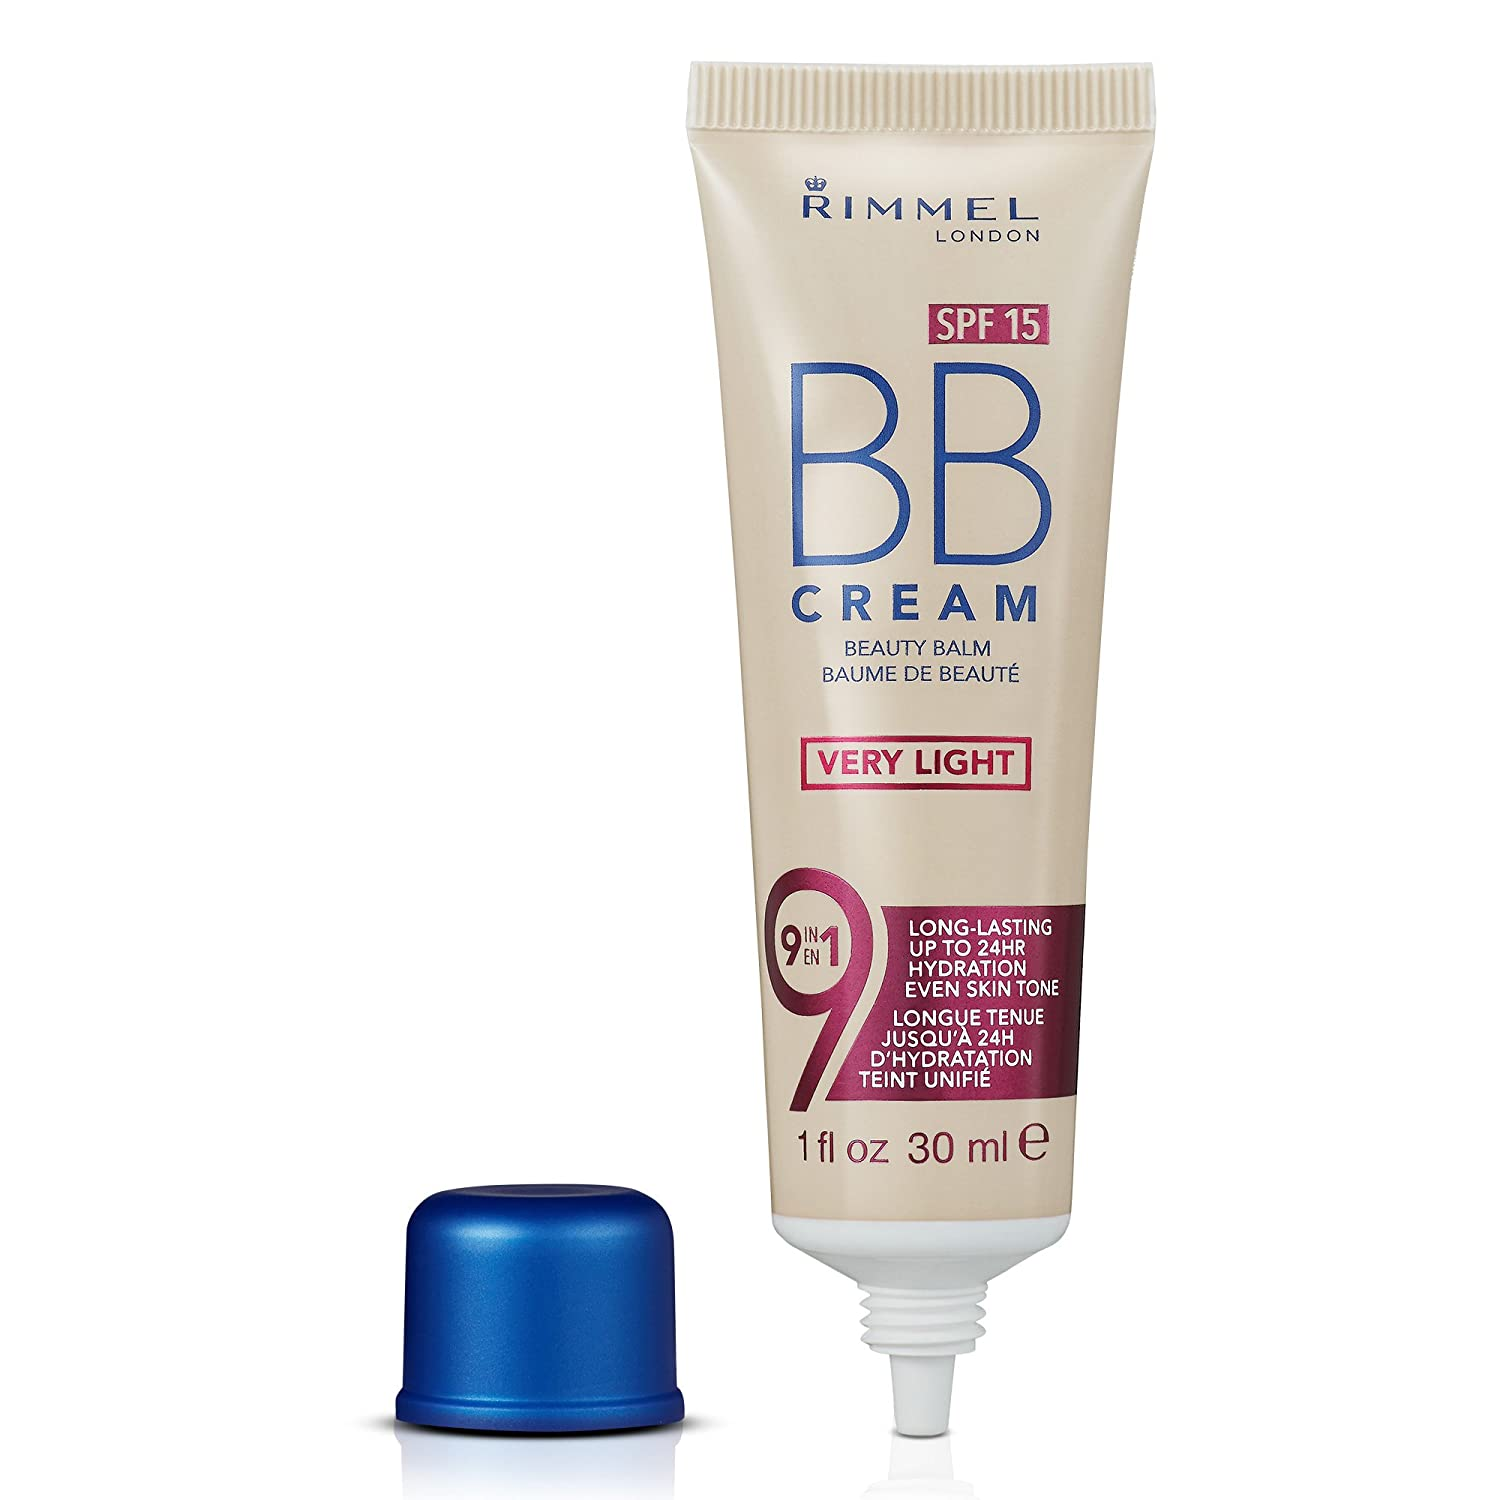 Rimmel London BB Cream, Light, 30 ml Coty 34775952001